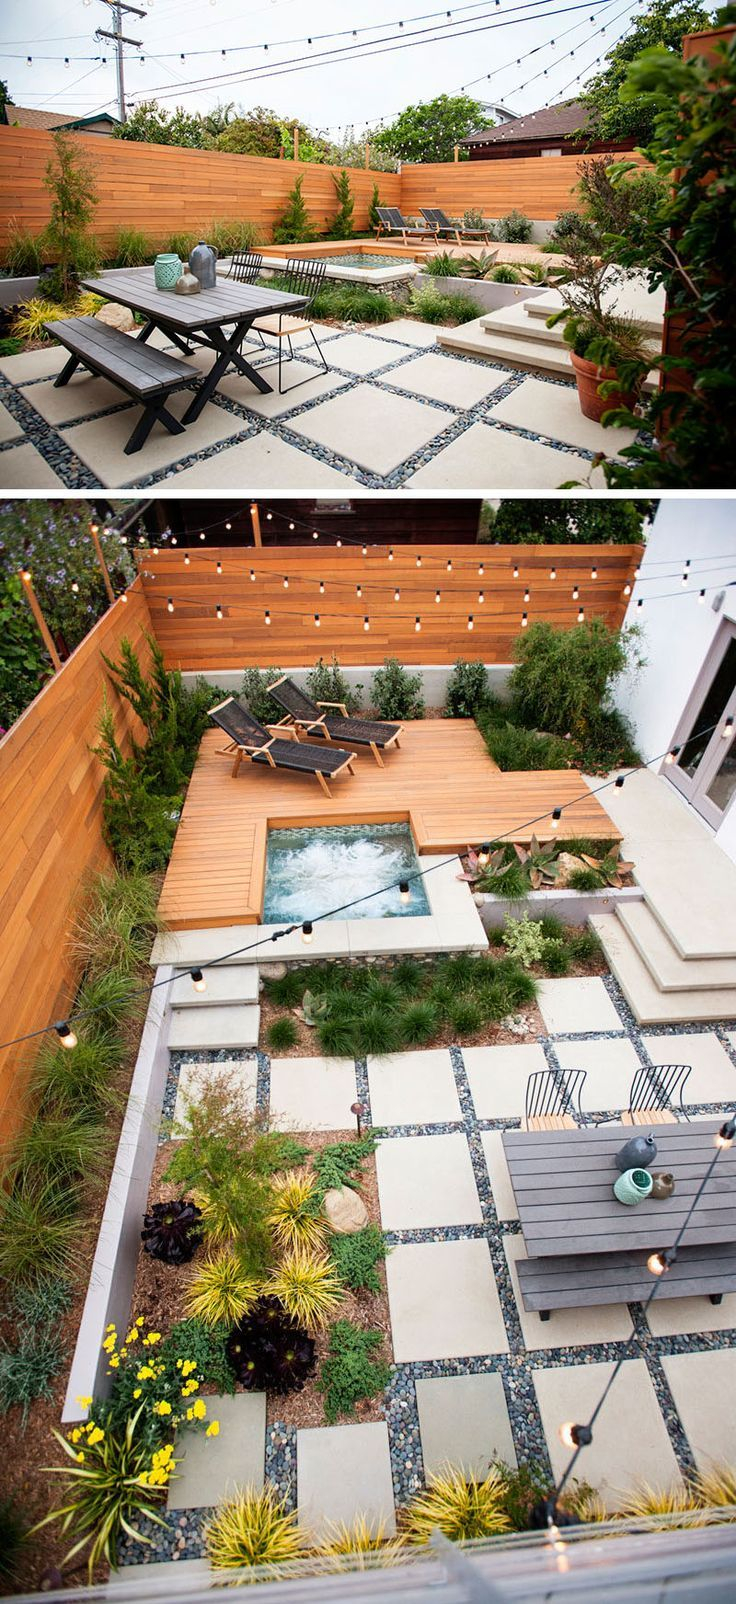 Landscaping Design Ideas 11 Backyards Designed For Entertaining for Landscape Design Backyard Ideas